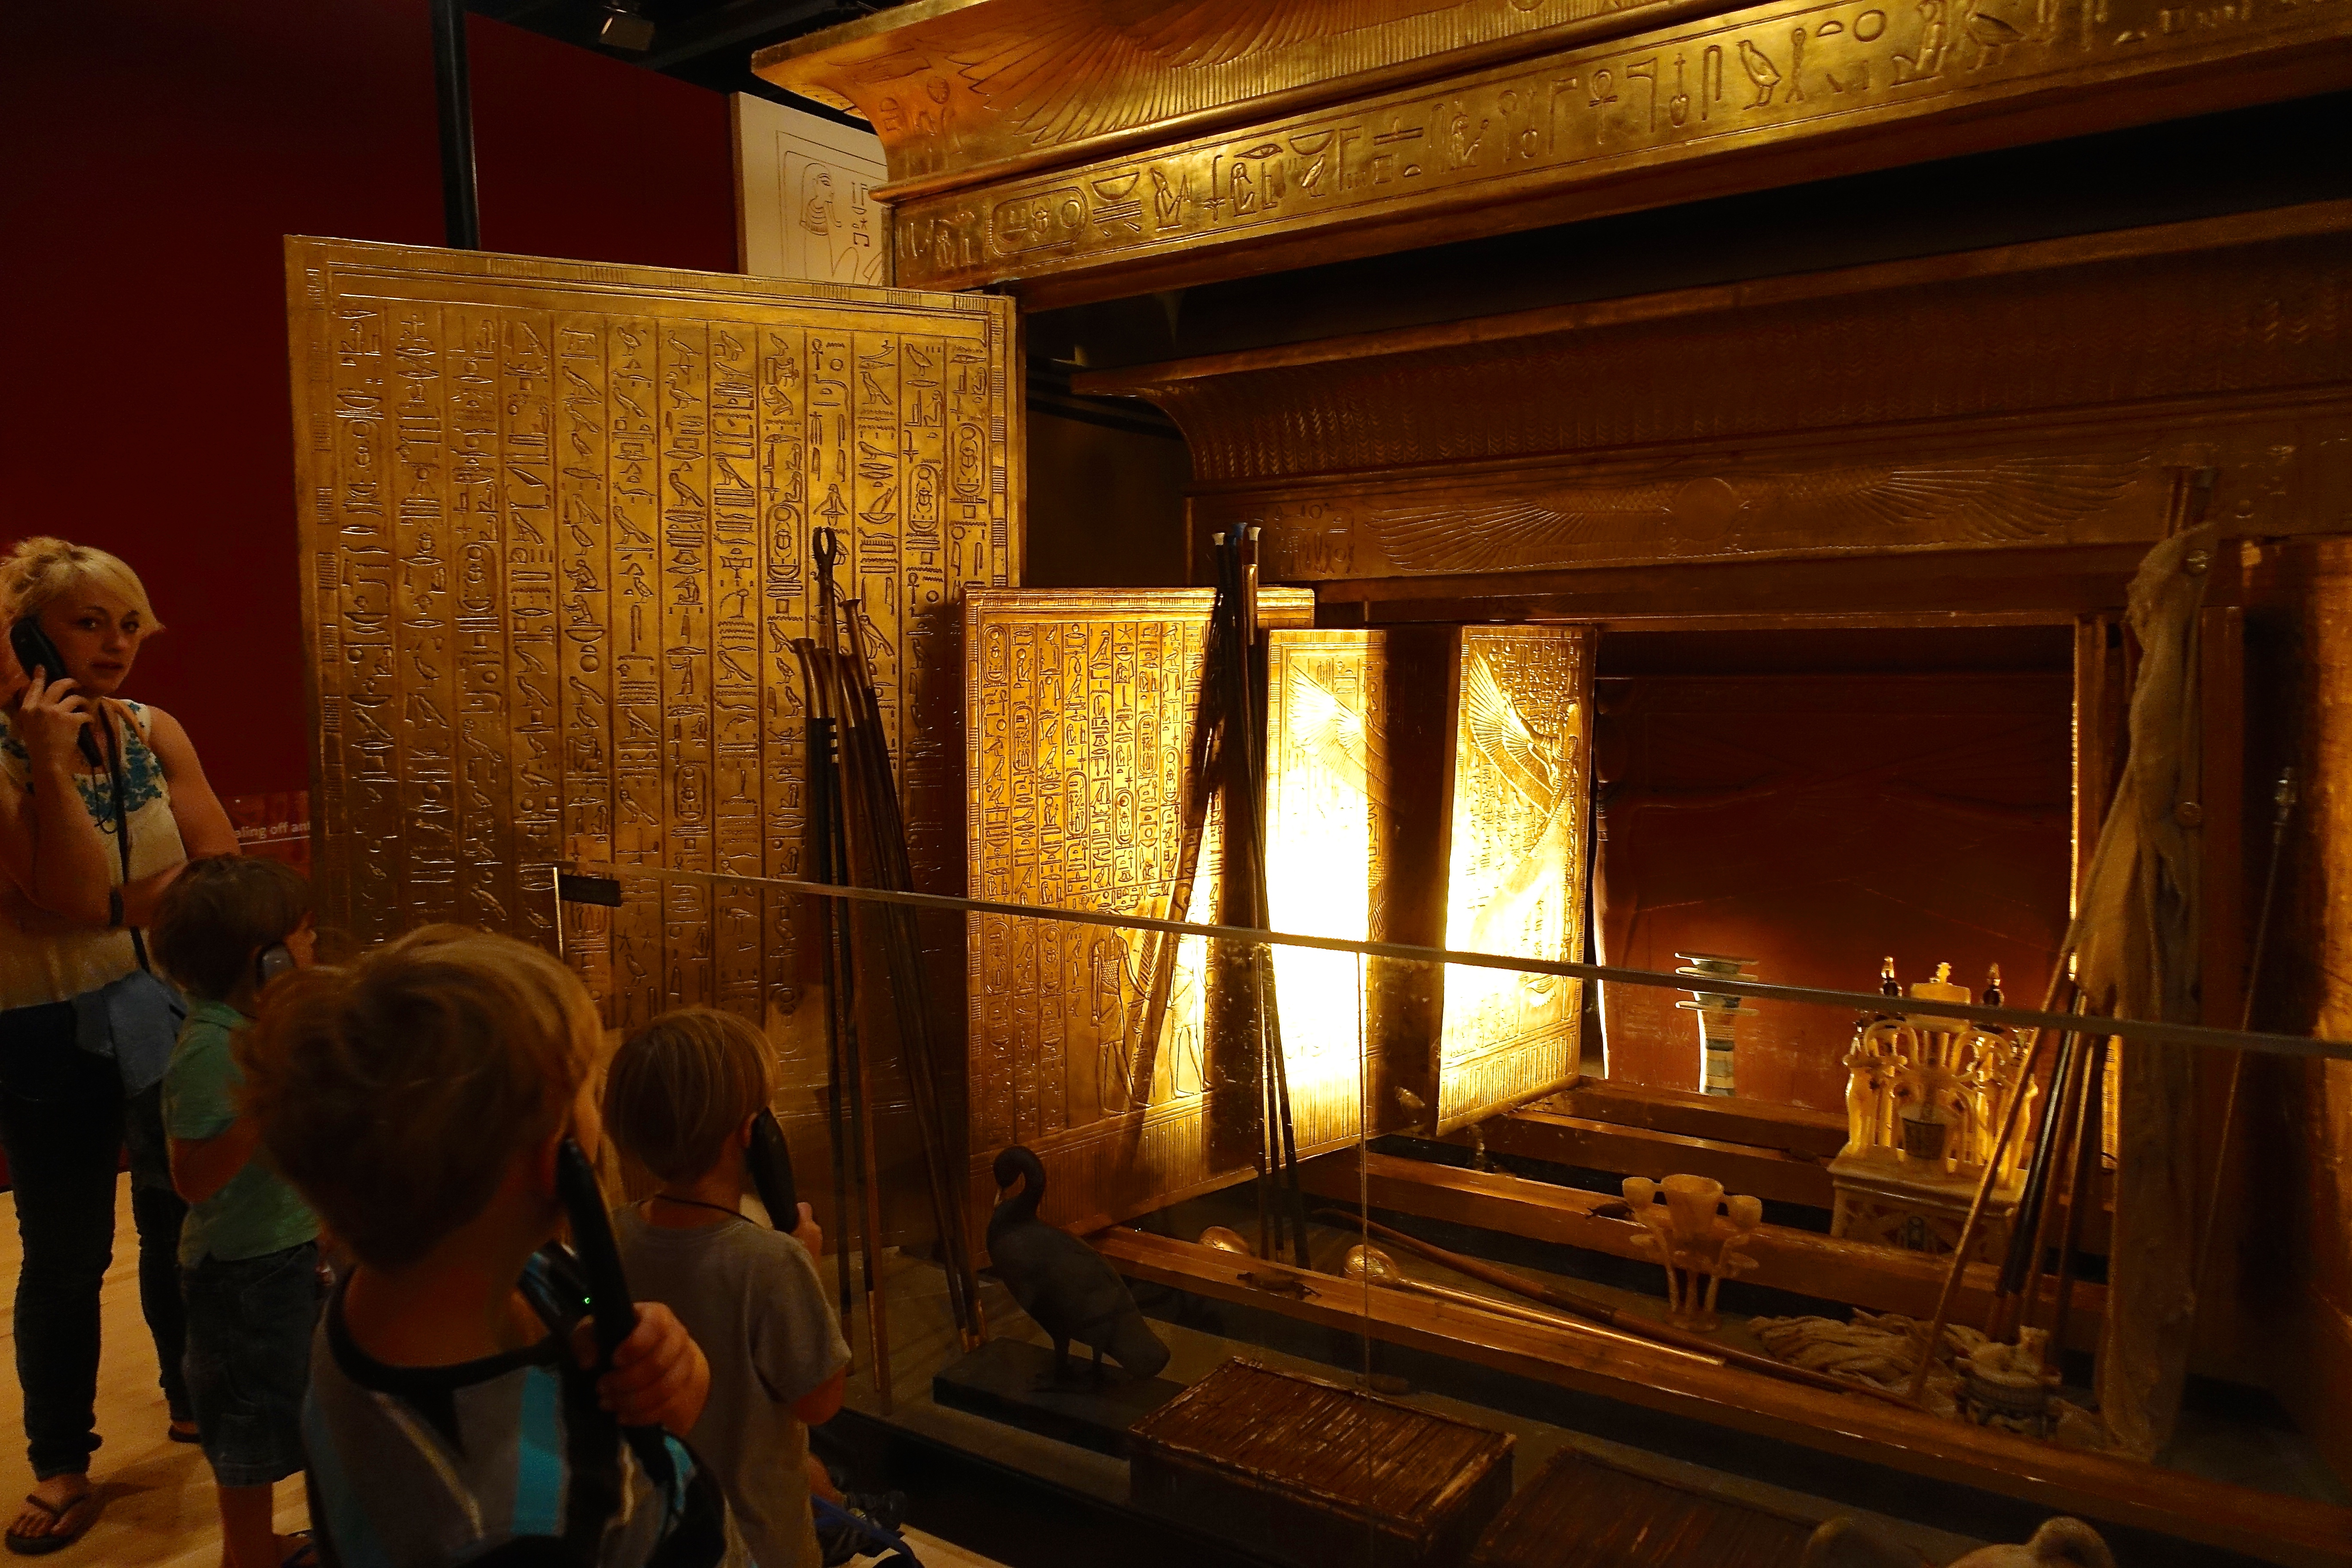 The Curse Of King Tuts Tomb Torrent: History Of Discovering King Tut's Tomb